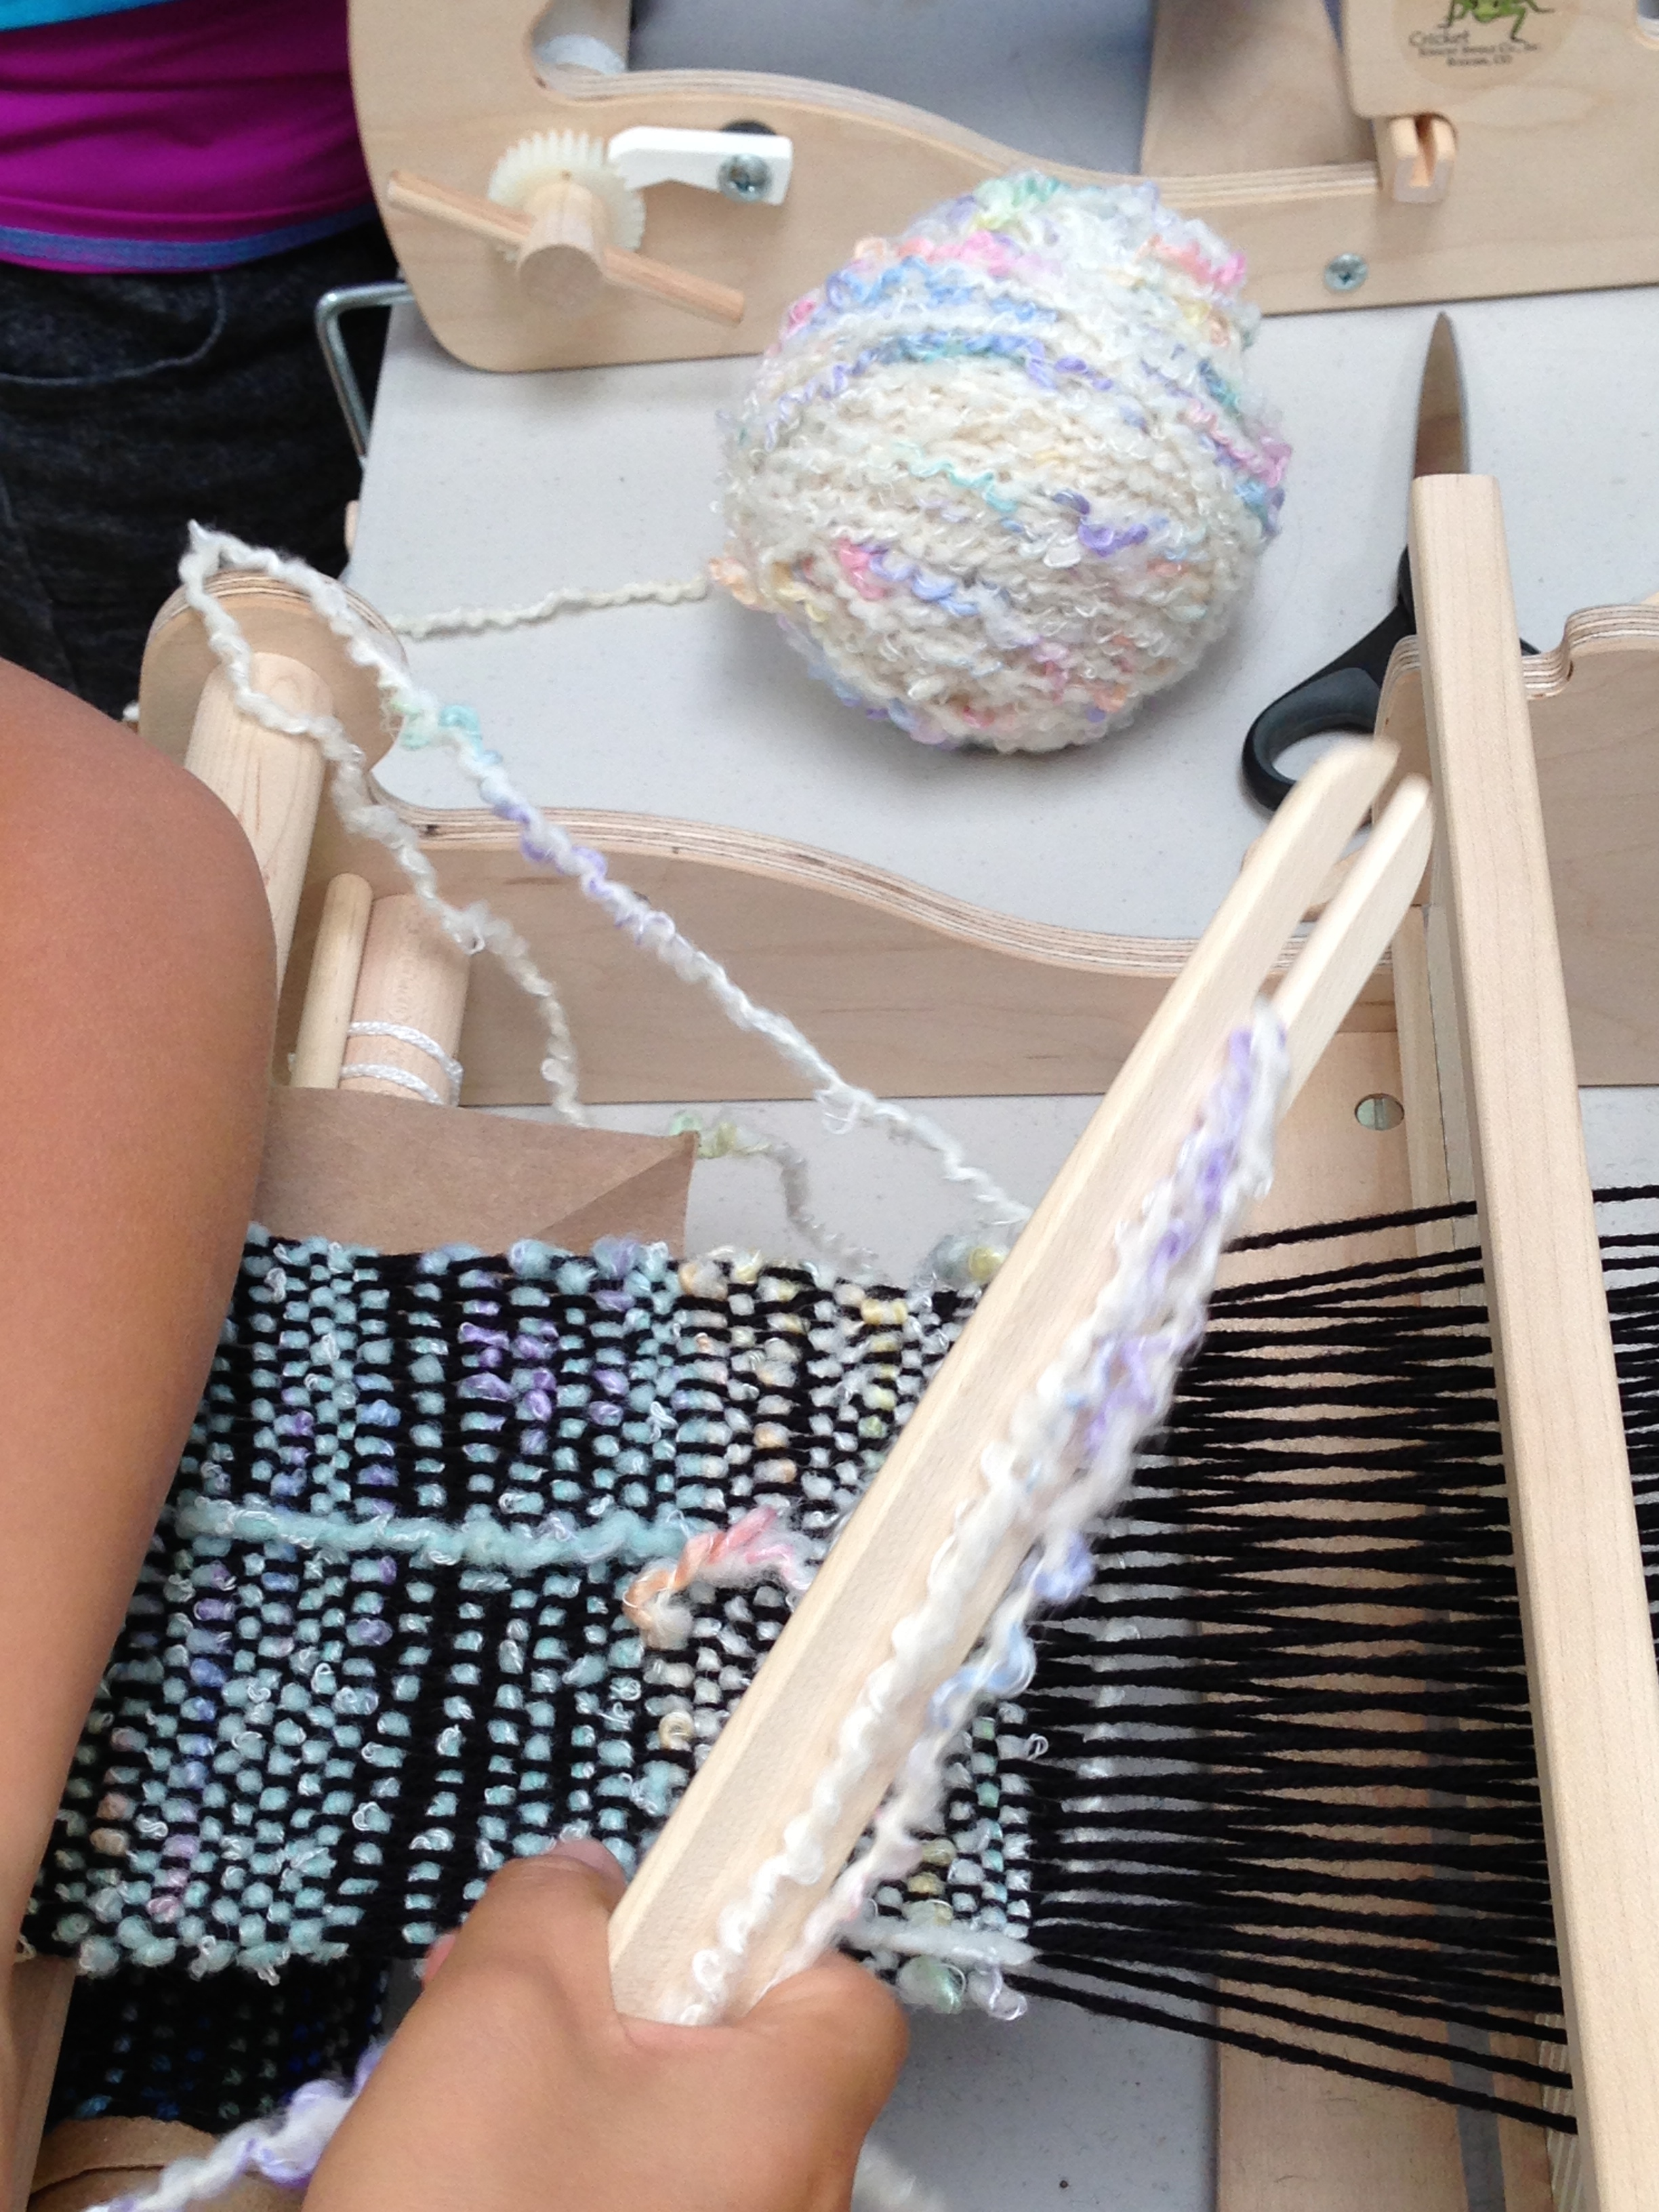 Gift yarn being used.